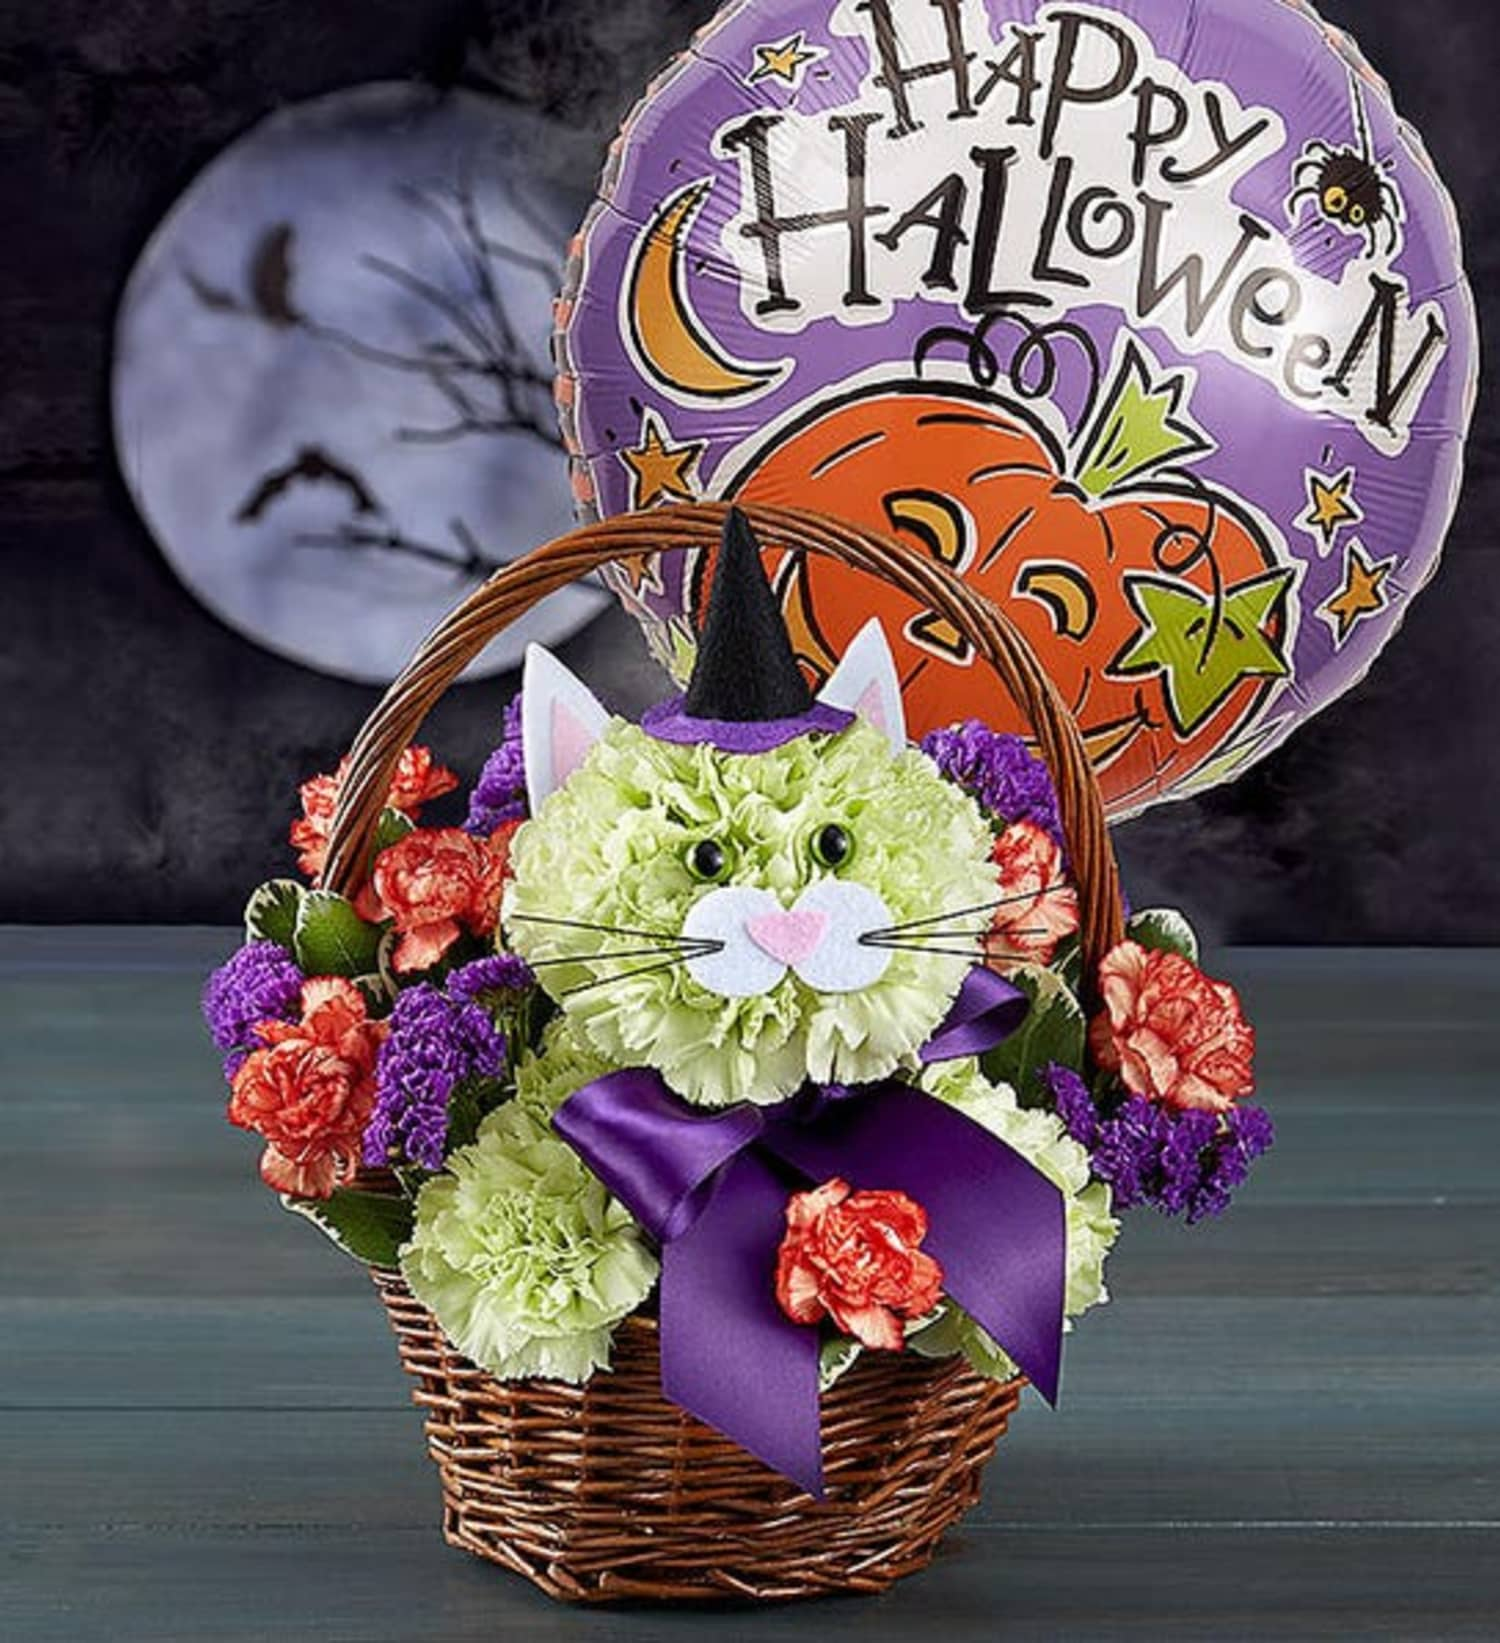 1-800-Flowers Has a Wickedly Good Halloween Collection